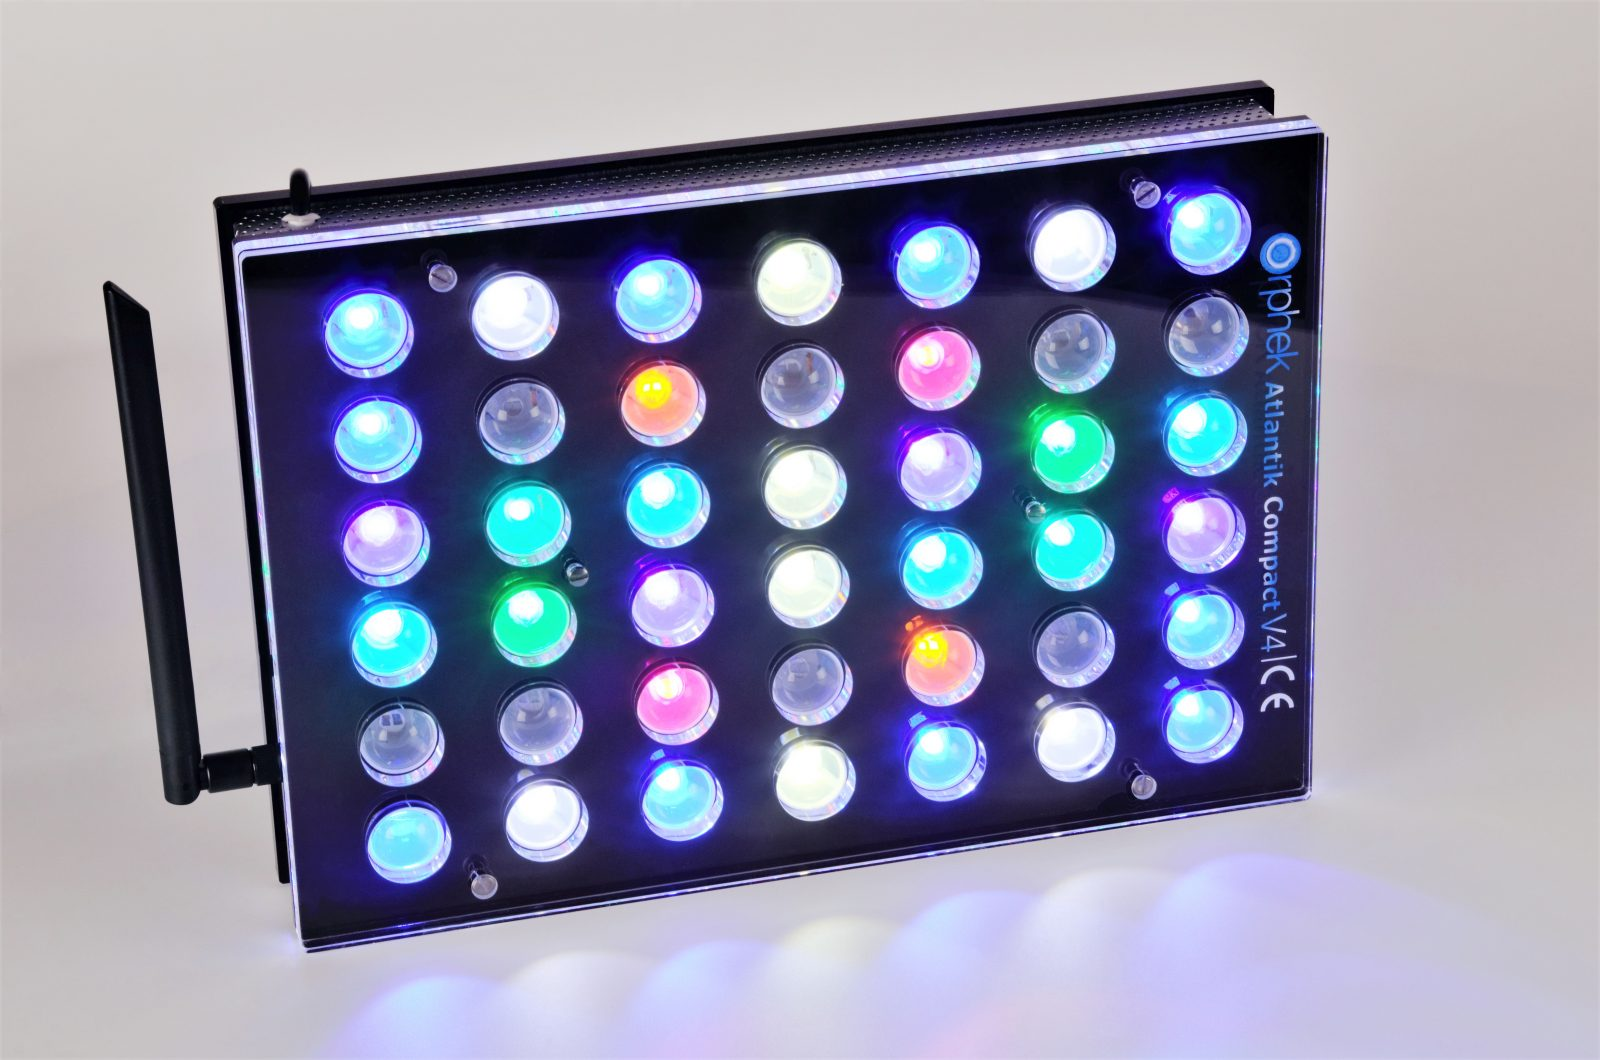 Orphek-Aquarium-Iluminación-LED-Atlantik -Compact-V4-light-on-channel 1 + 2 + 4